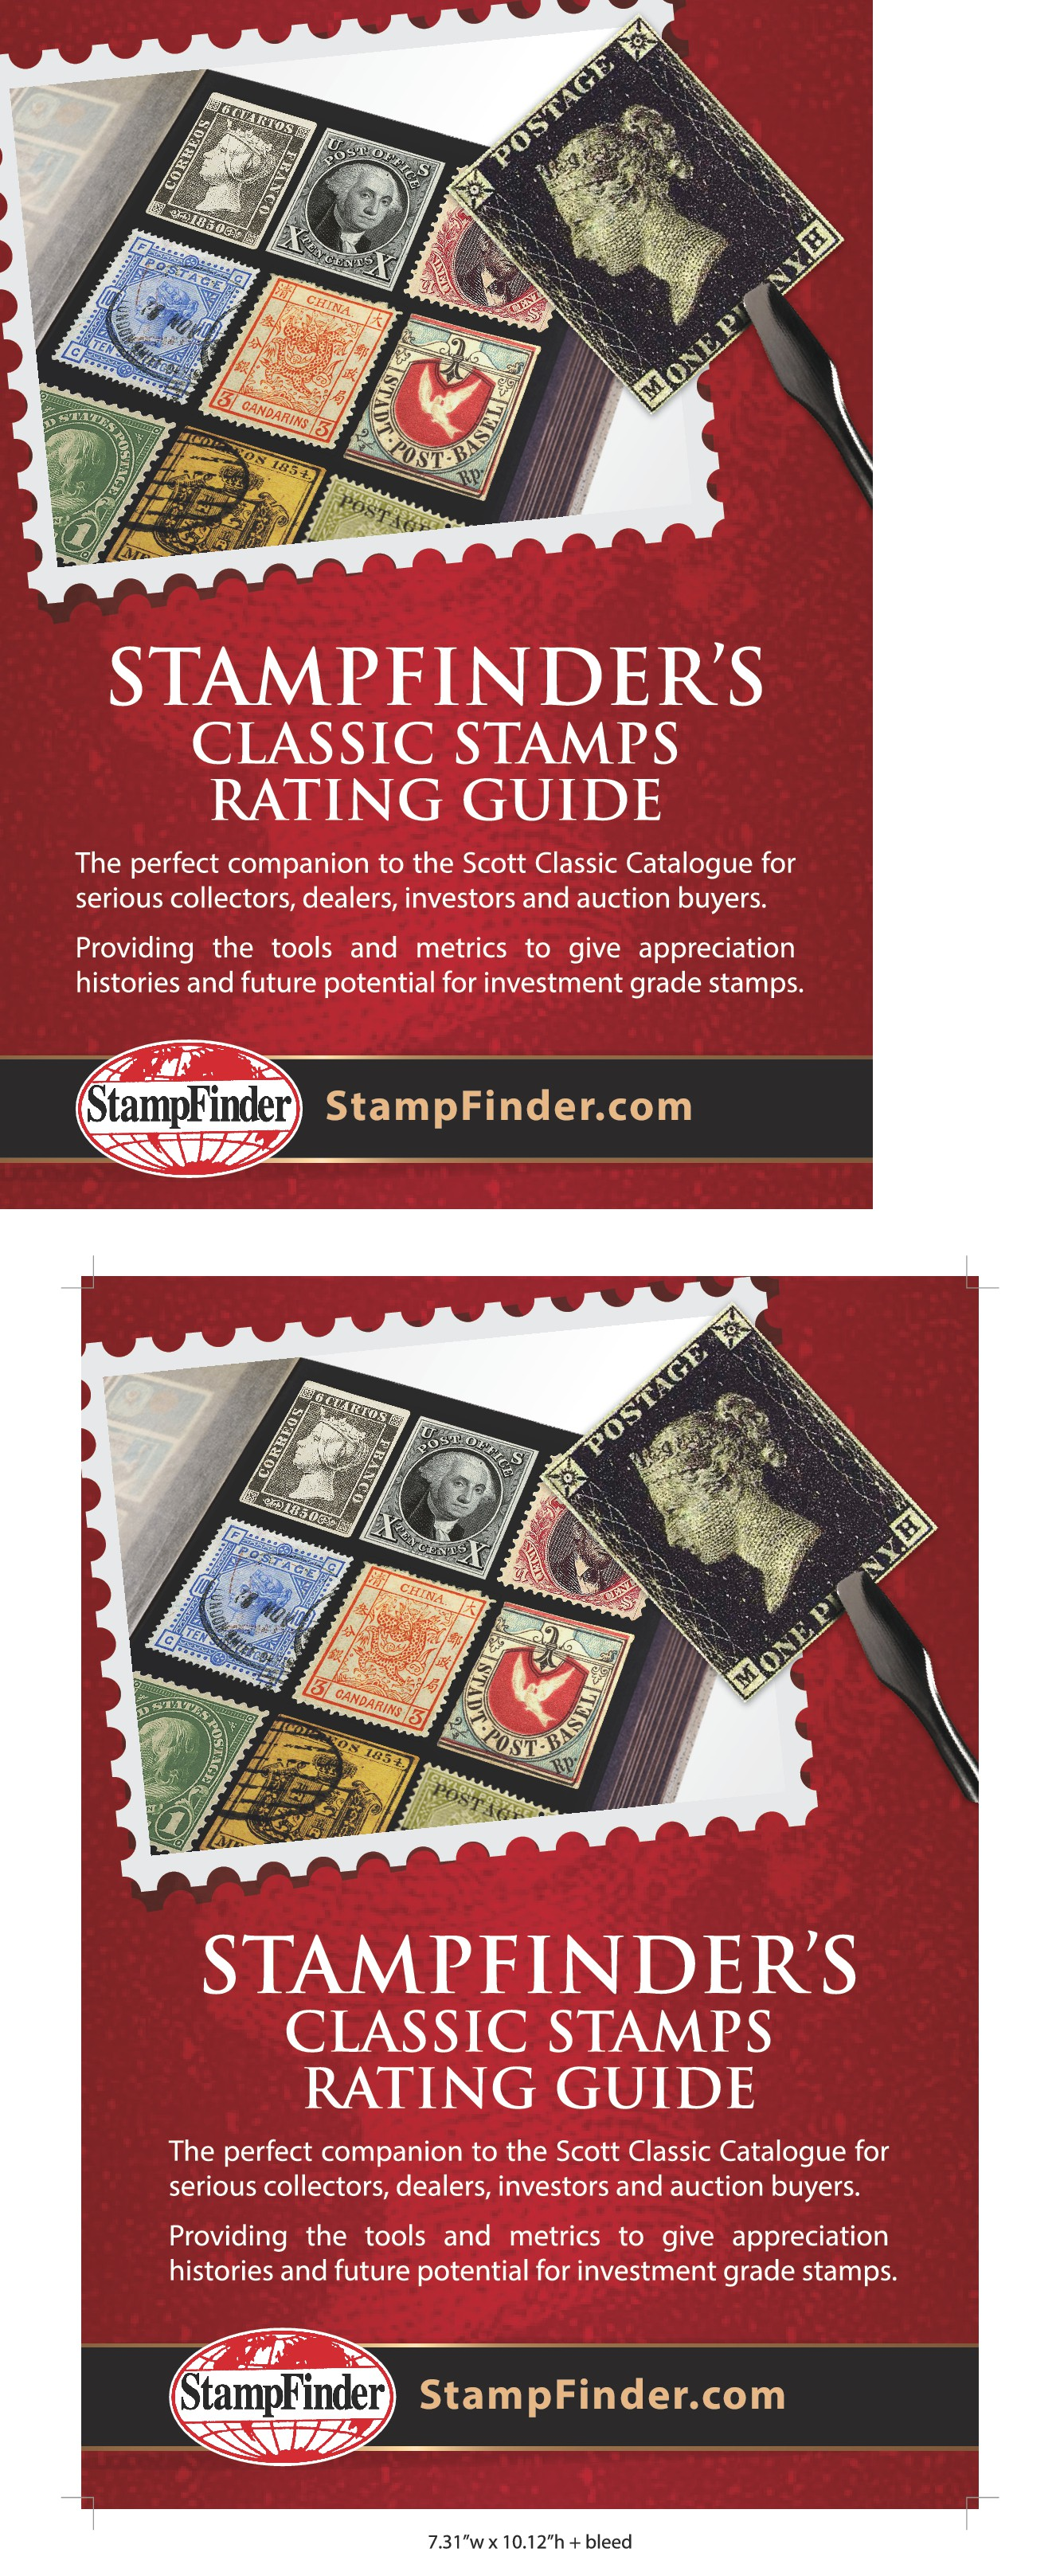 StampFinder needs a full page ad.